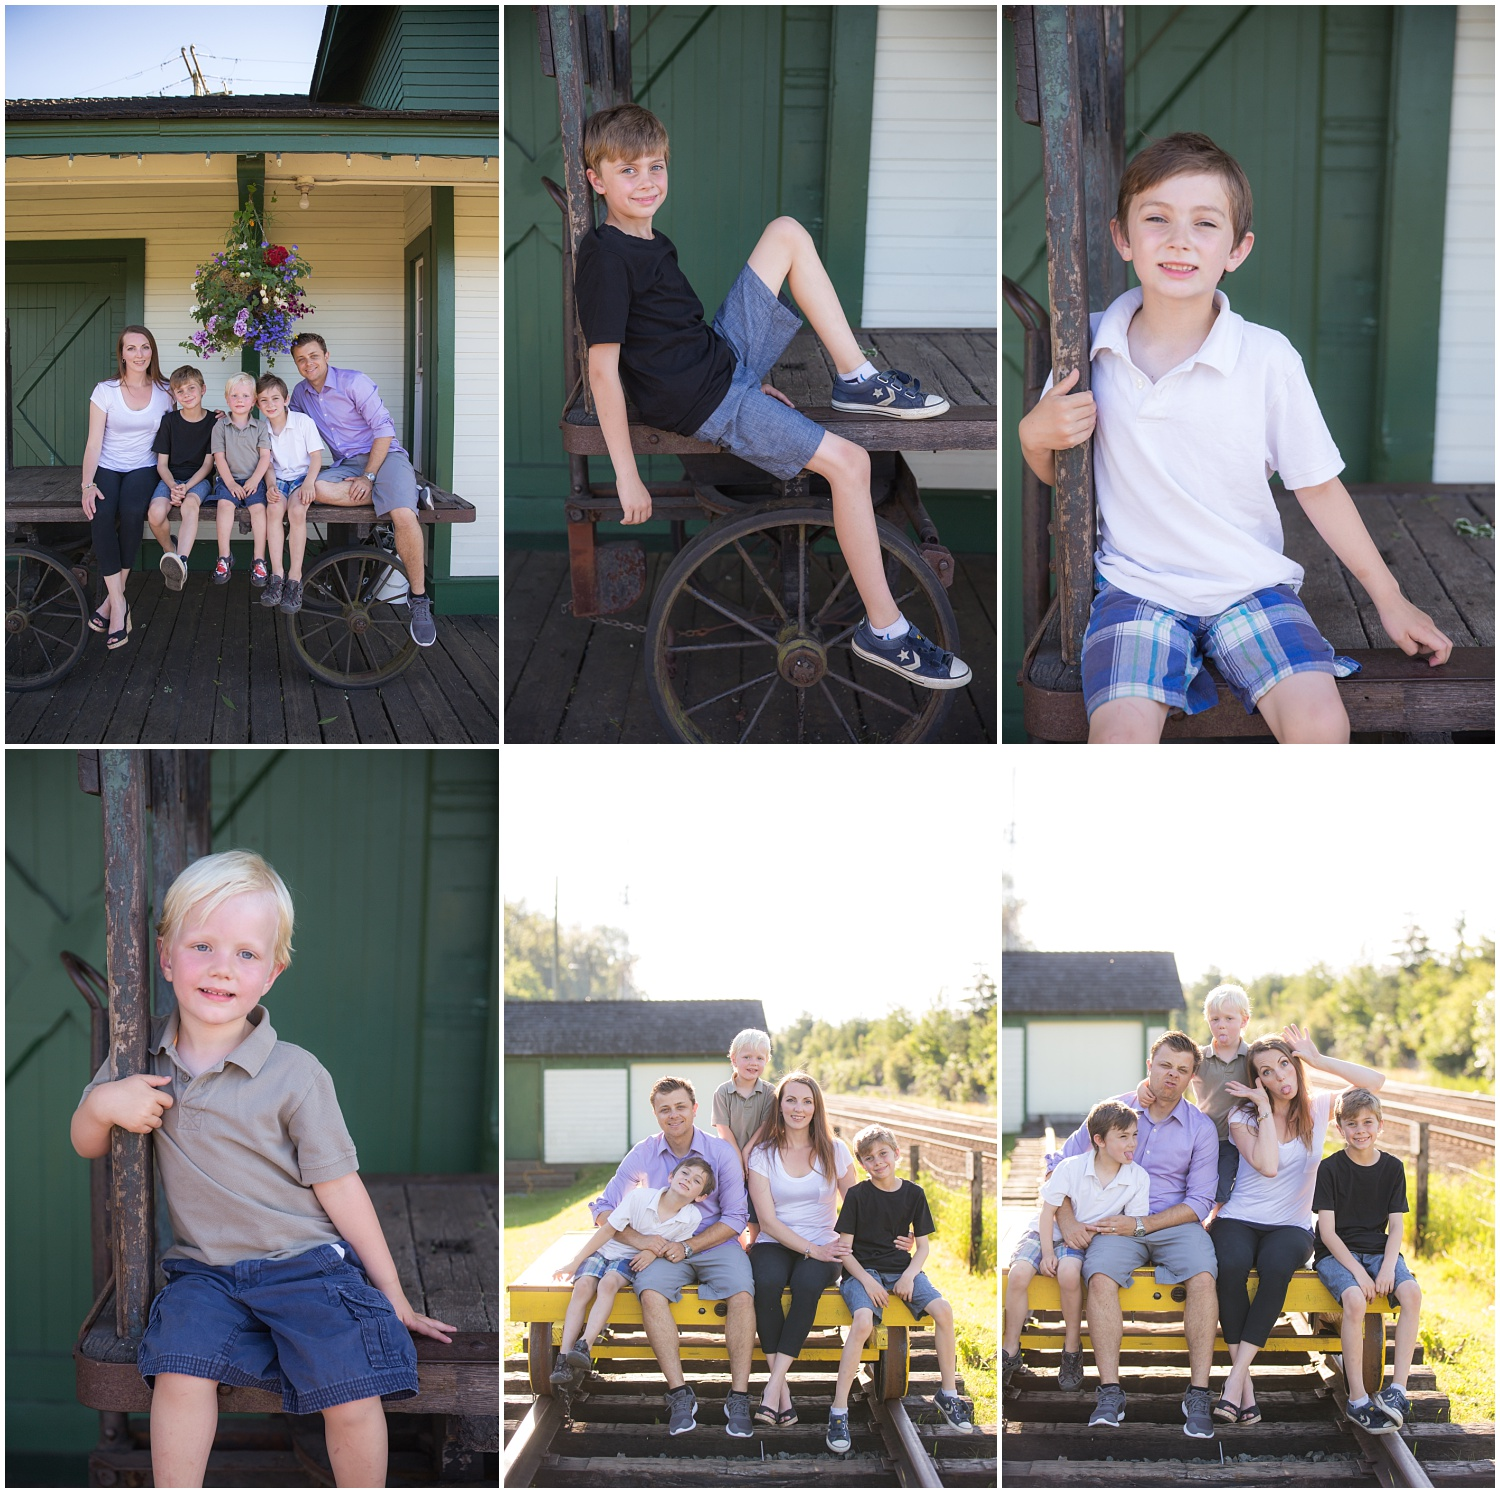 Amazing Day Photography - Stewart Farm House Family Session - Photo 4 Hope - BC Childrens Hospital Fundraiser (10).jpg